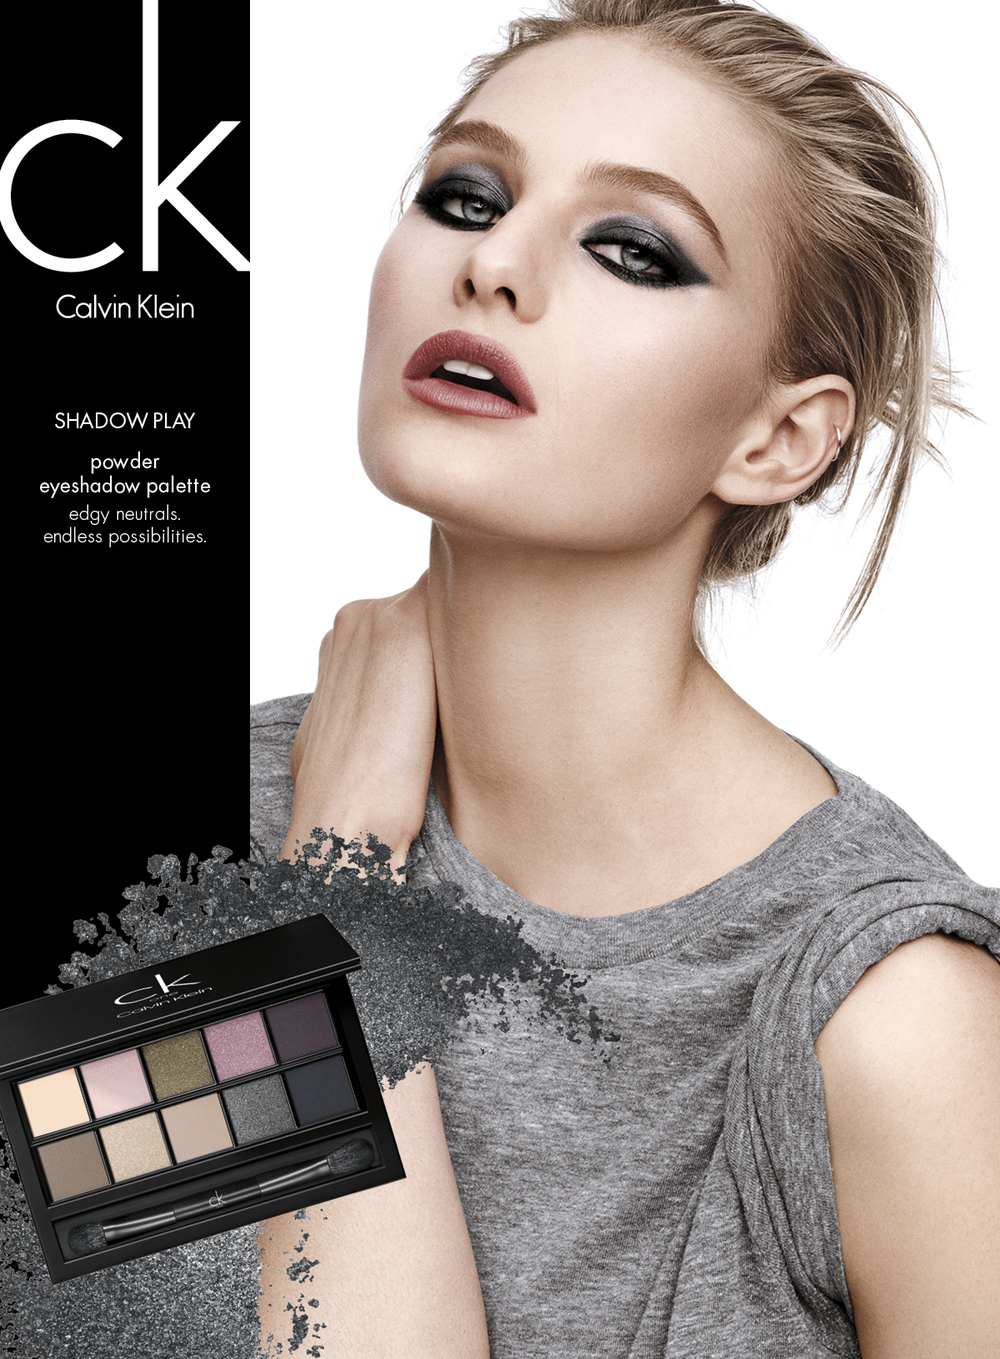 CK COLOR SINGLE PAGE 8%22X10.875%22_EYESHADOW PALLETTE 1.jpg